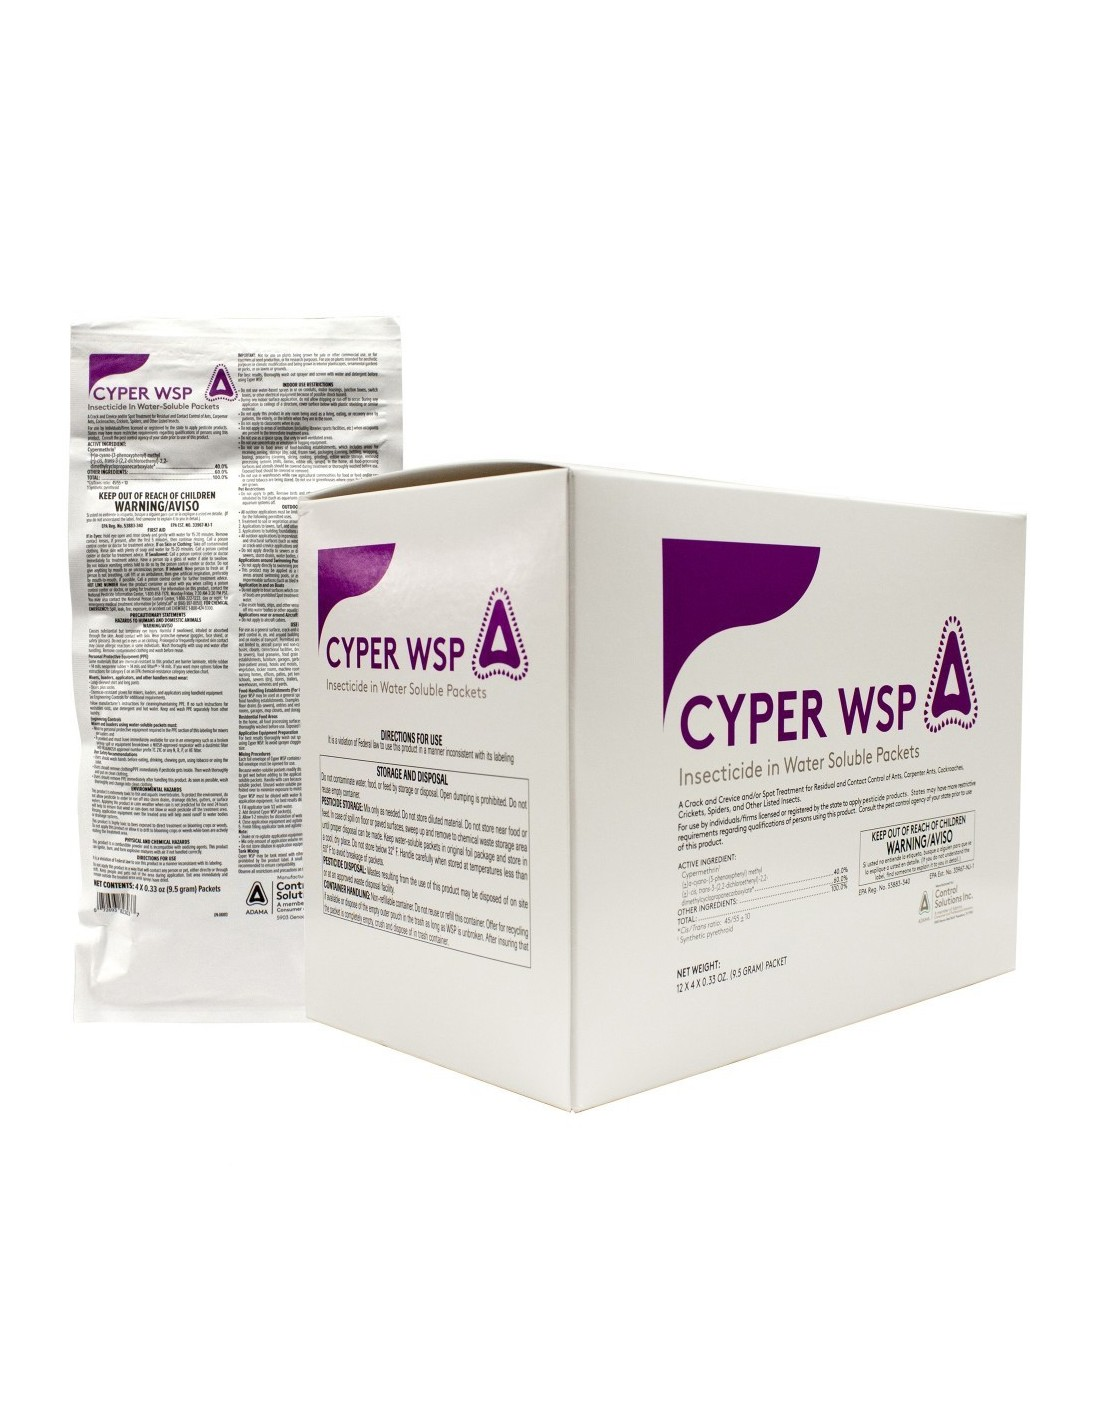 Cyper WSP Insecticide In Water Soluble Packets